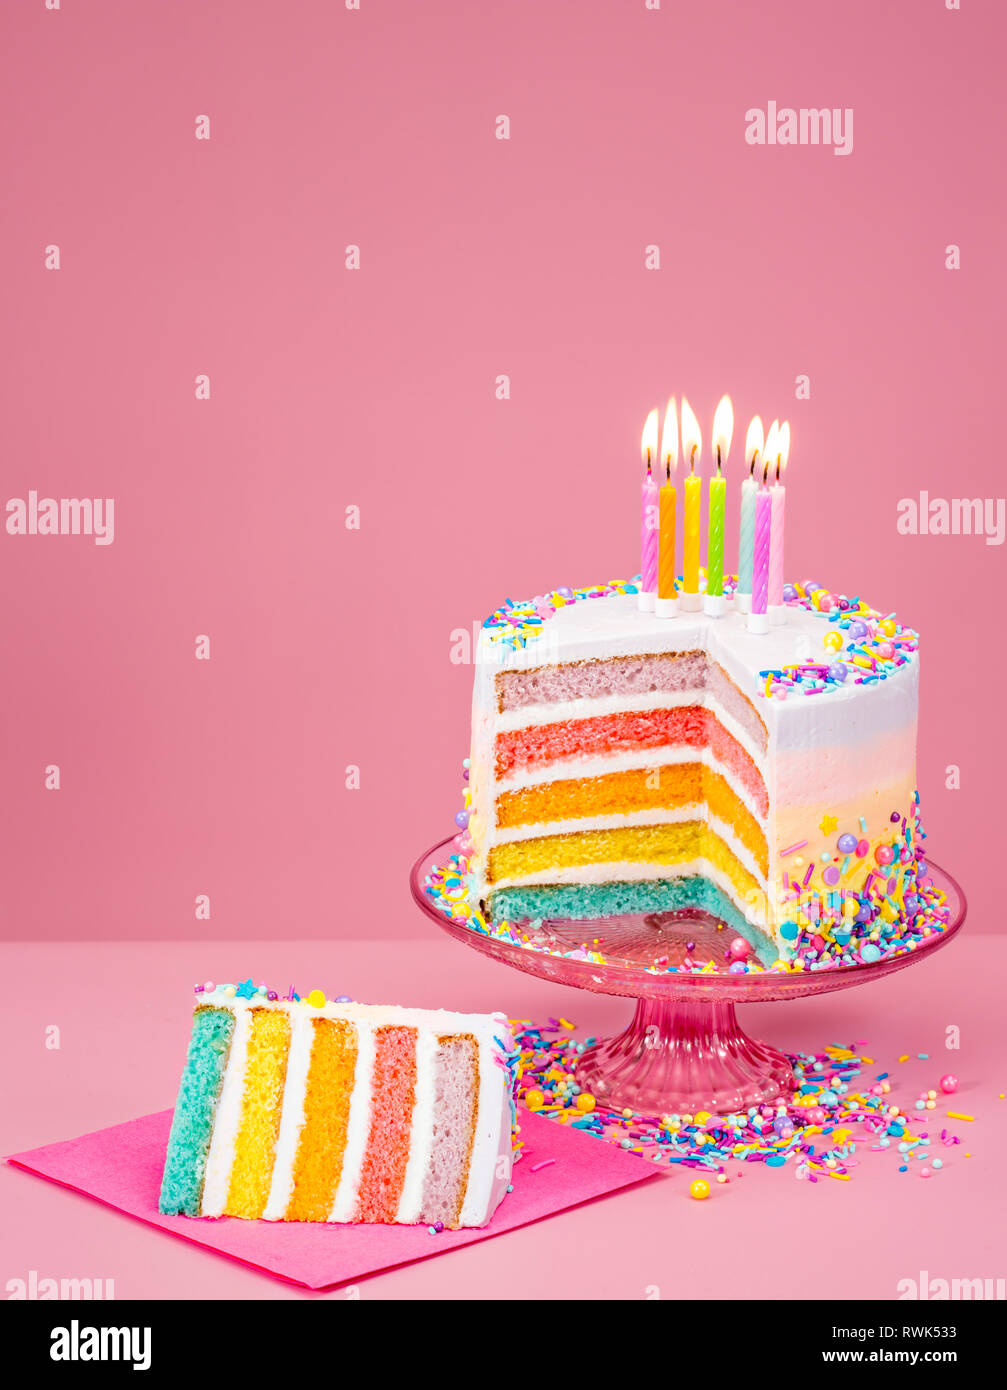 Colorful Rainbow Birthday Cake With Candles Over A Pink Background